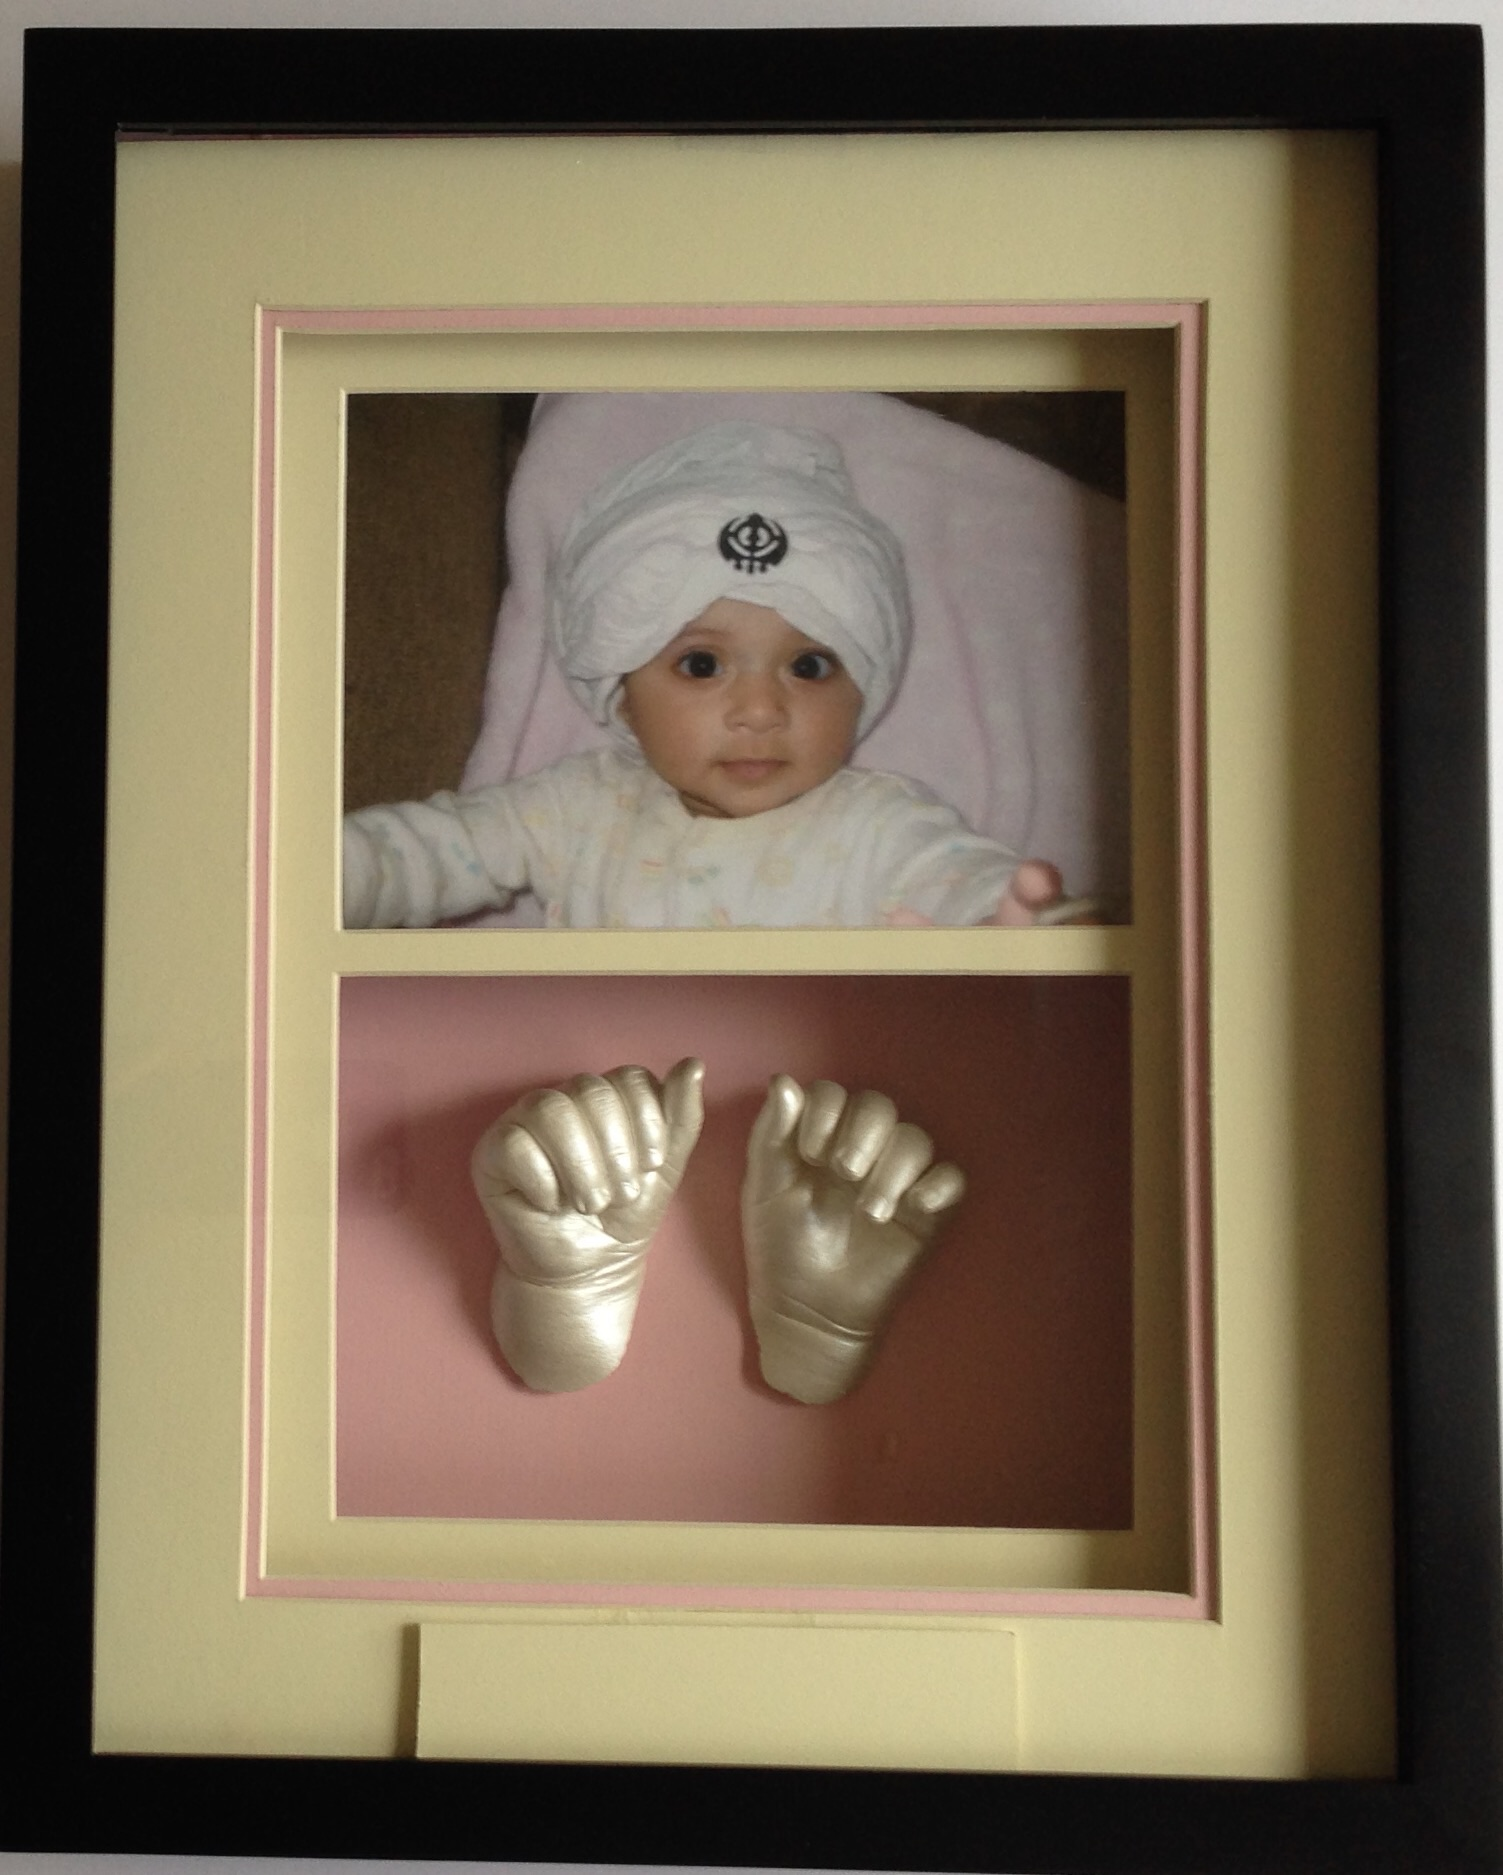 Double window shadow box lifelasting memories yours forever baby hand starting 22500 jeuxipadfo Image collections